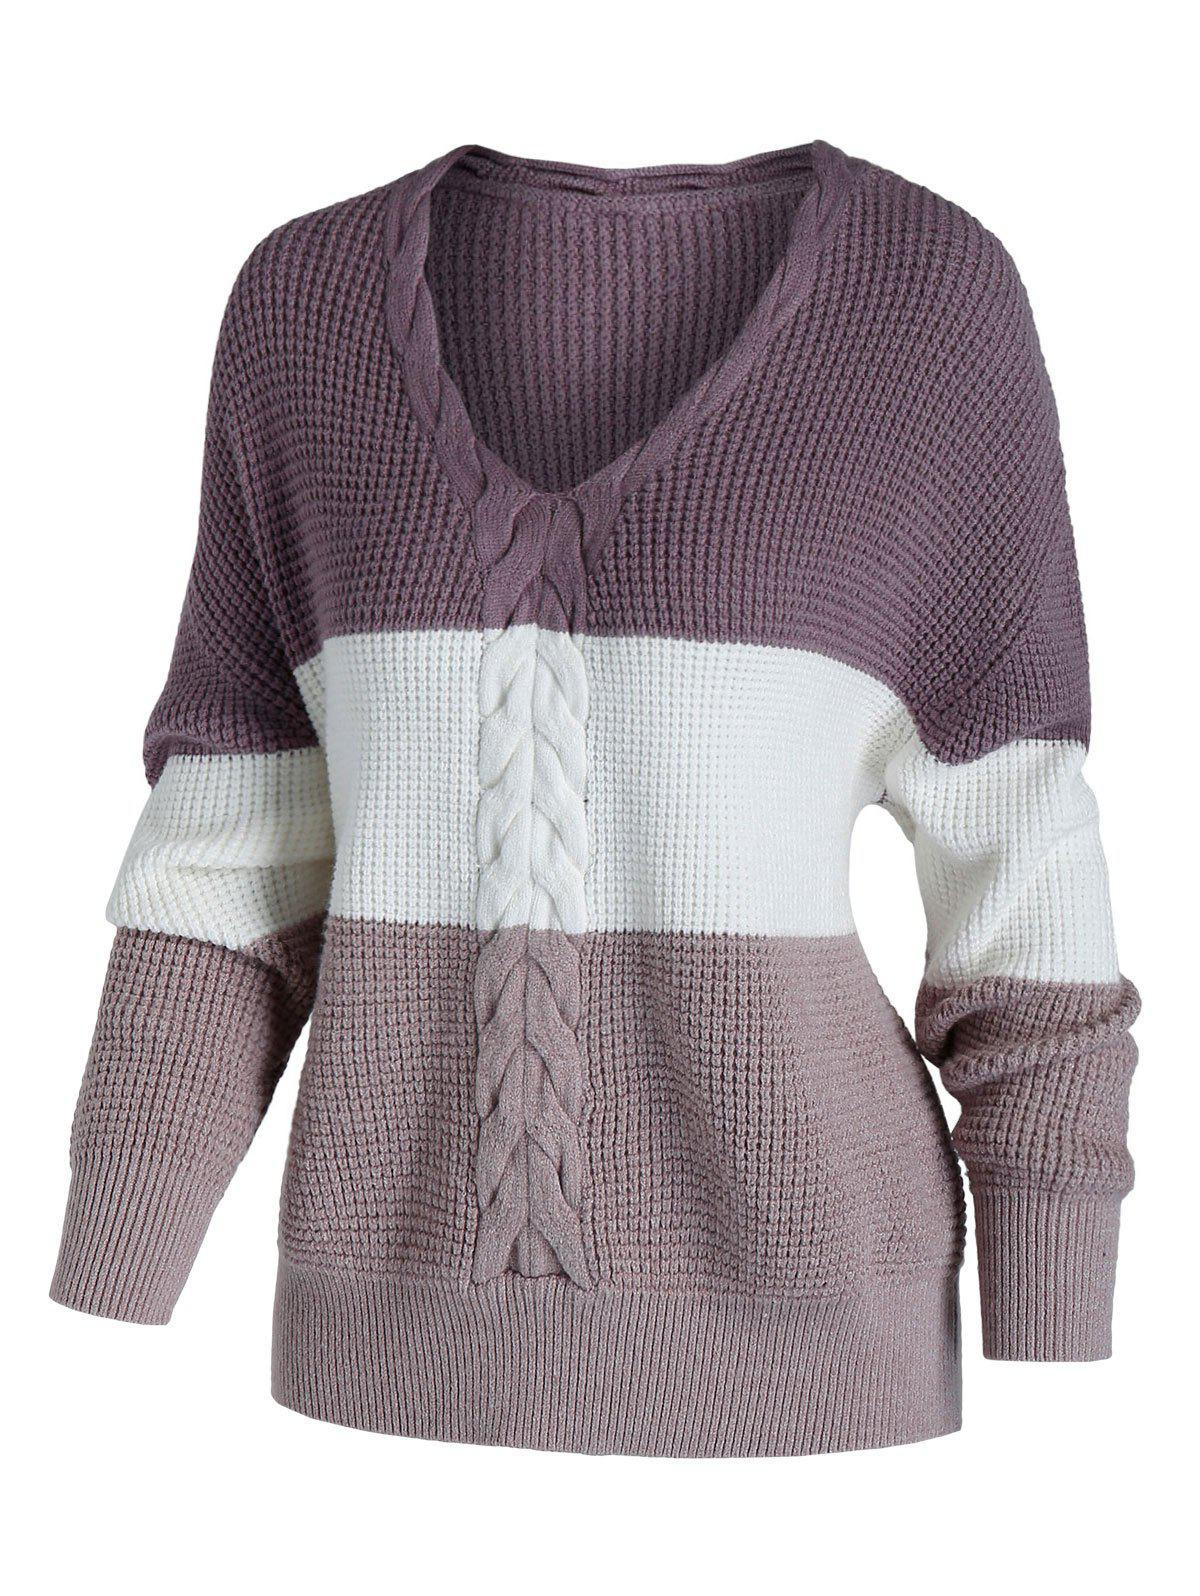 Plus Size Cable Chunky Knit Colorblock Sweater - LIGHT PINK 4X